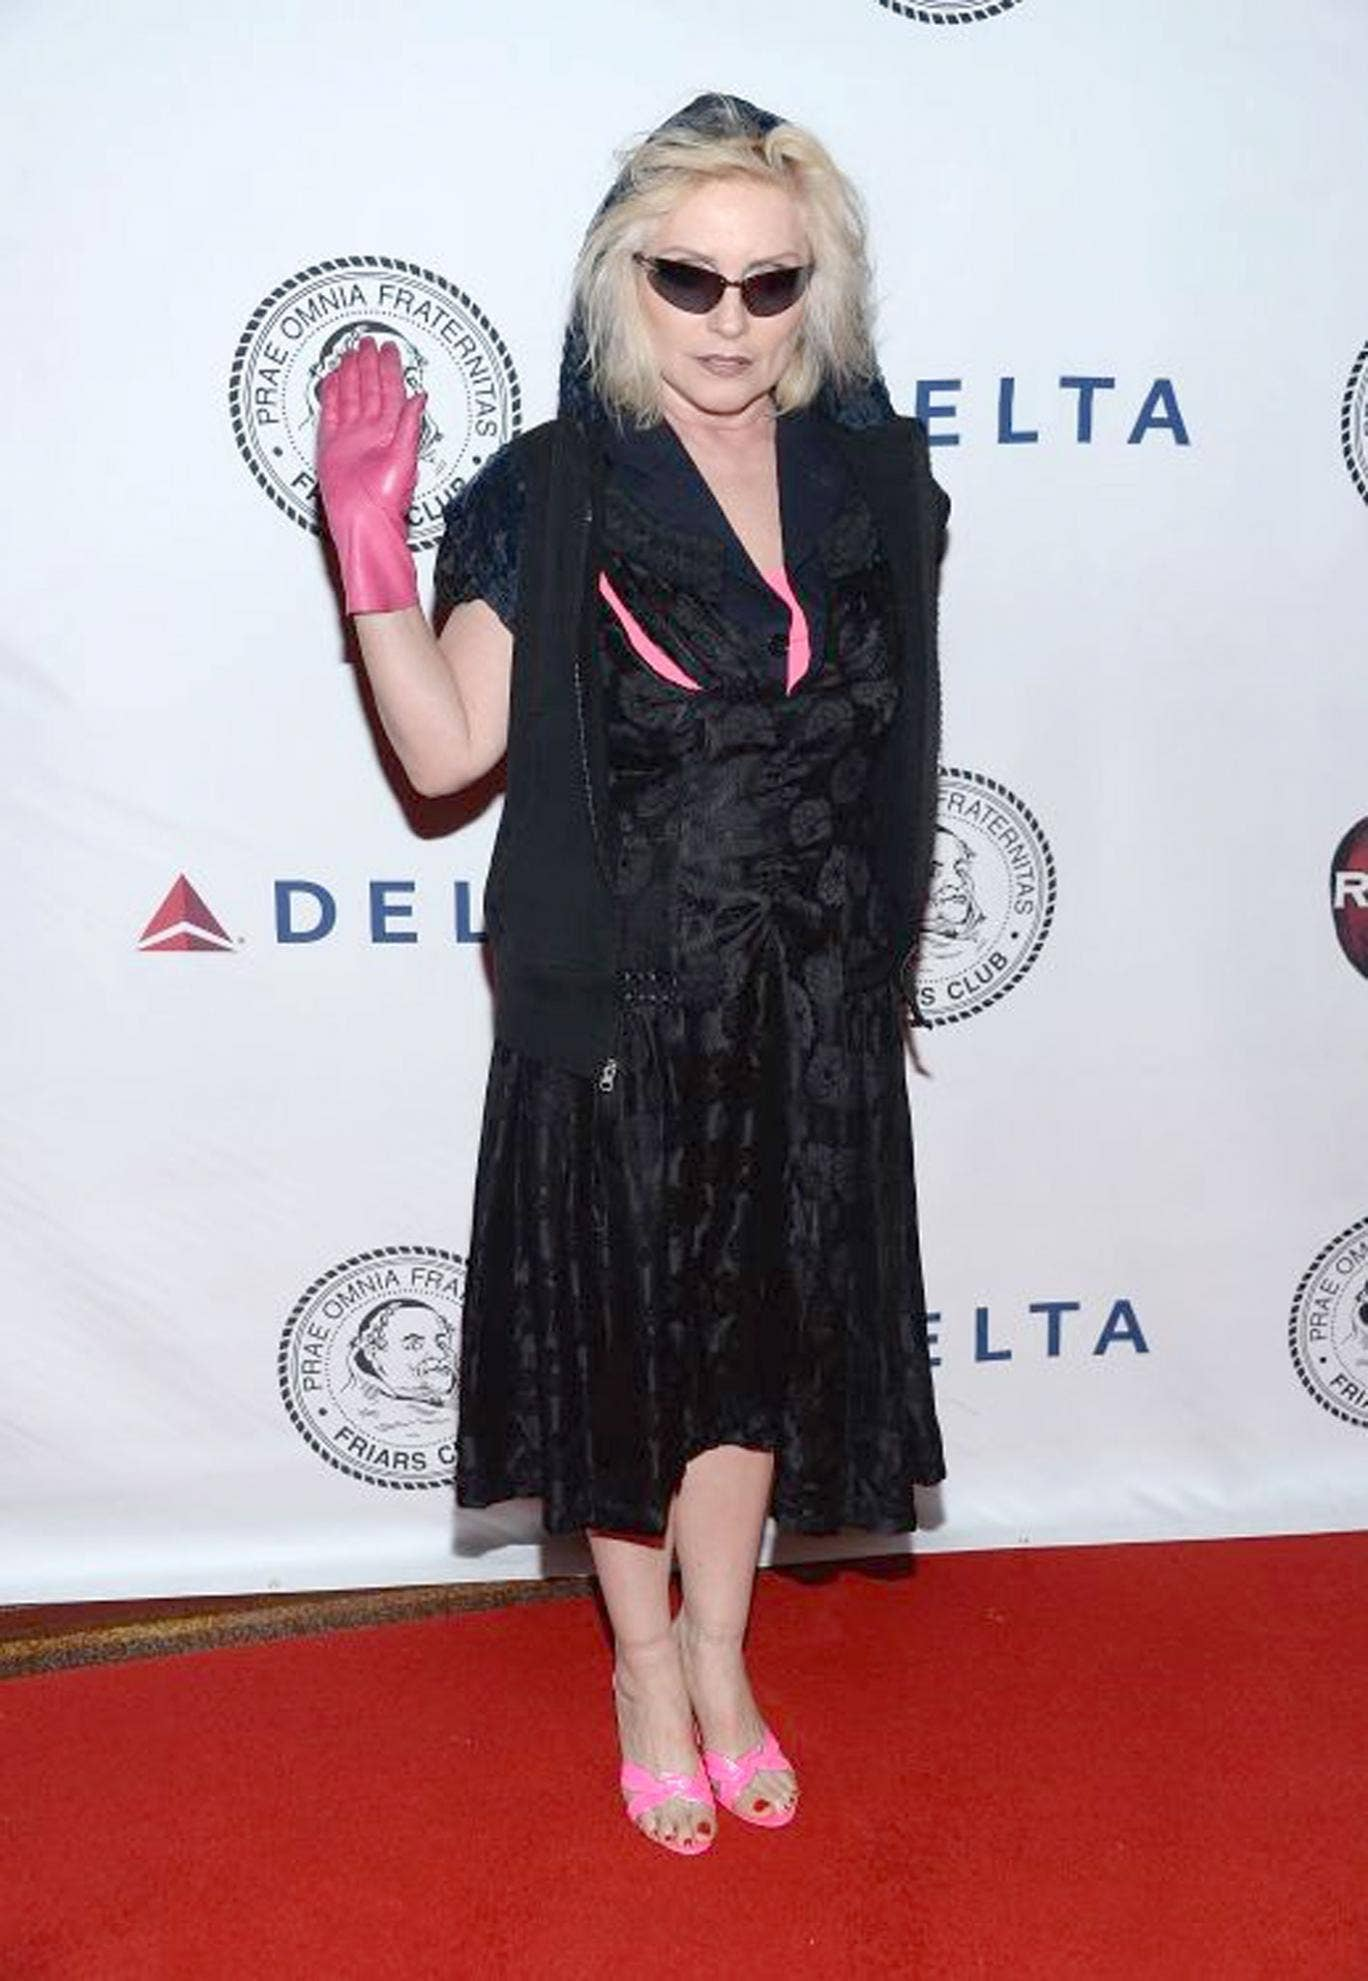 In the mix: Debbie Harry's outfit is clearly the result of an extensive game of wardrobe roulette